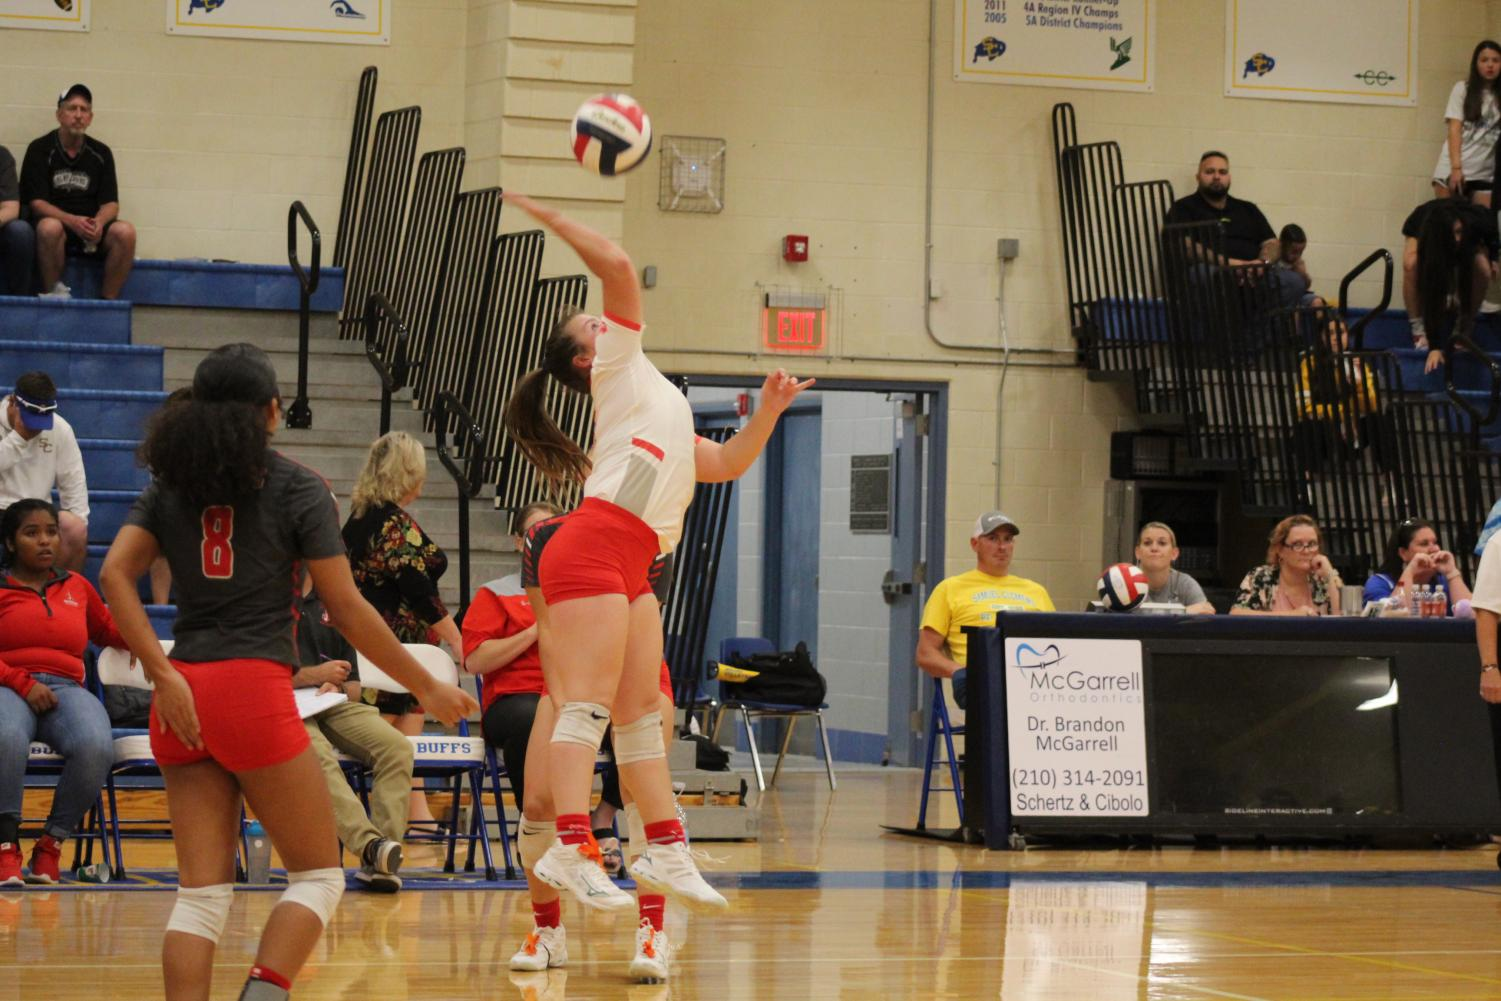 Sophomore Madelyn Thorton serves the ball to begin the next play againsts Clemens. She is the libero for the team. The Rockets fell to the Buffalos in three sets.